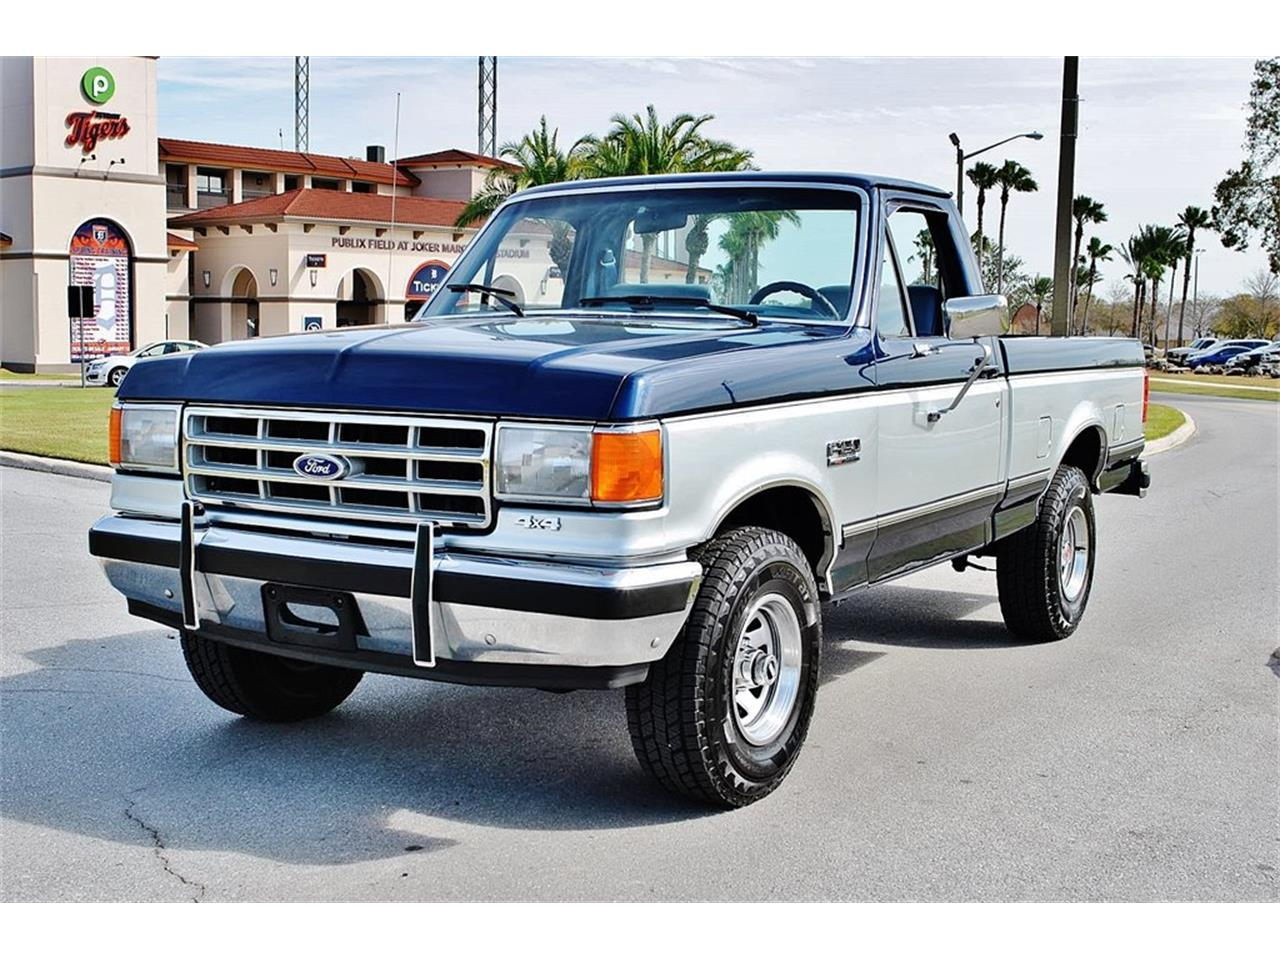 Large picture of 88 f150 n8c3